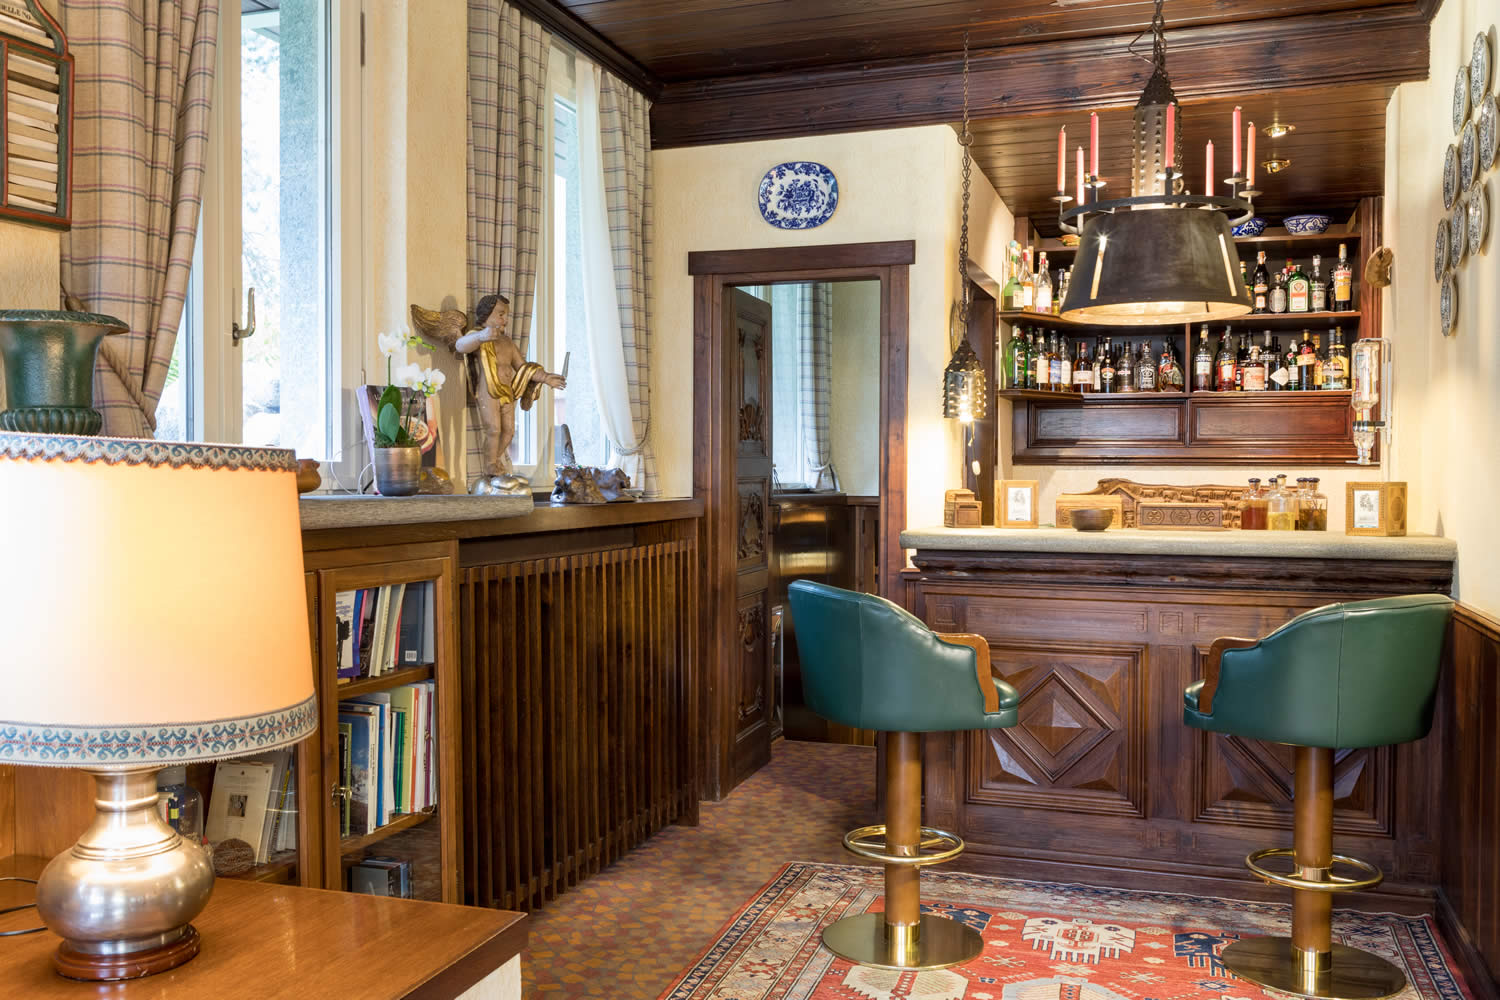 The hotel bar where you can taste a wine from the Aosta Valley.